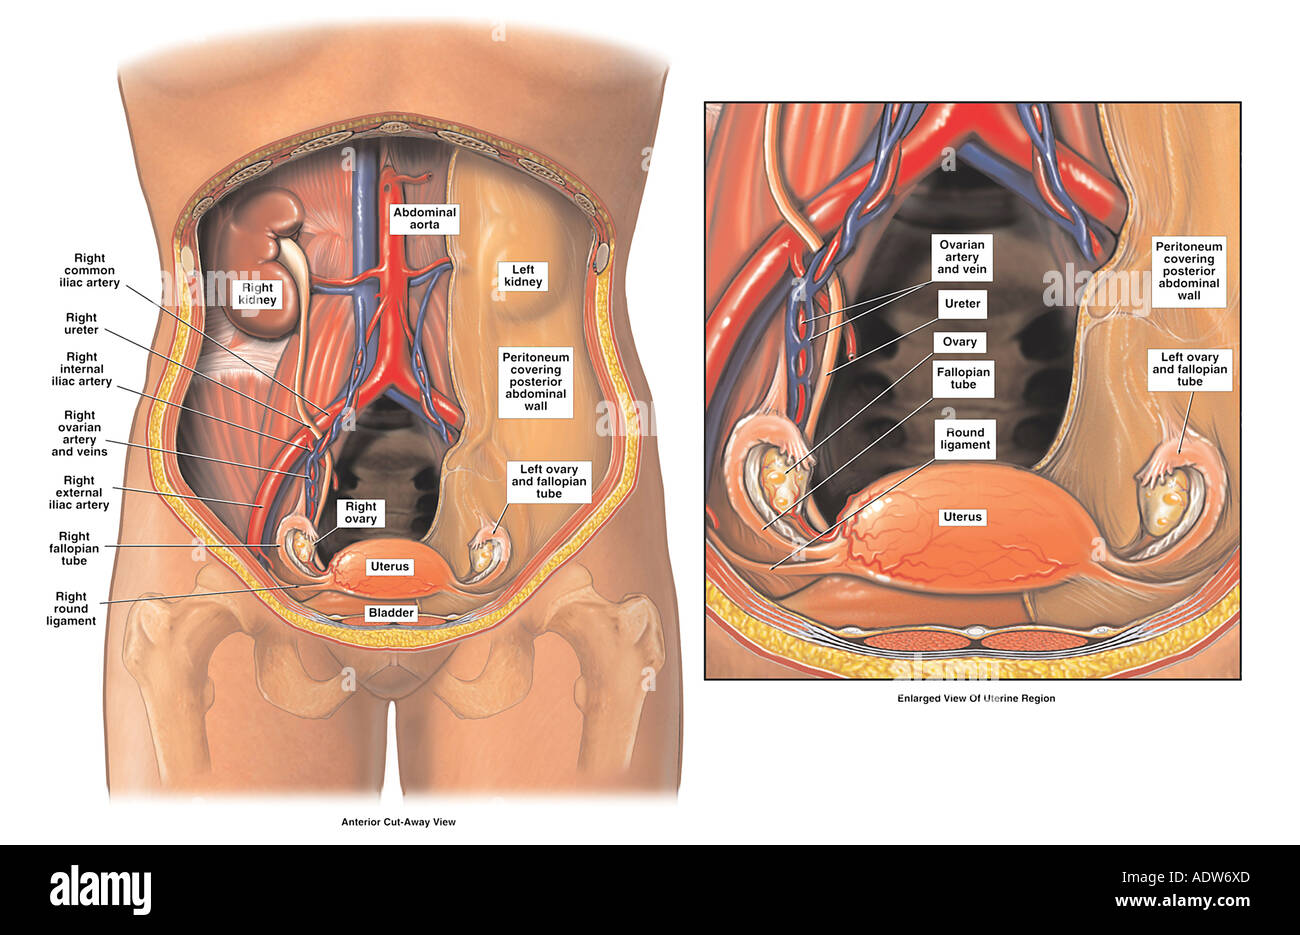 Anatomy of the Female Pelvis Stock Photo: 7712300 - Alamy